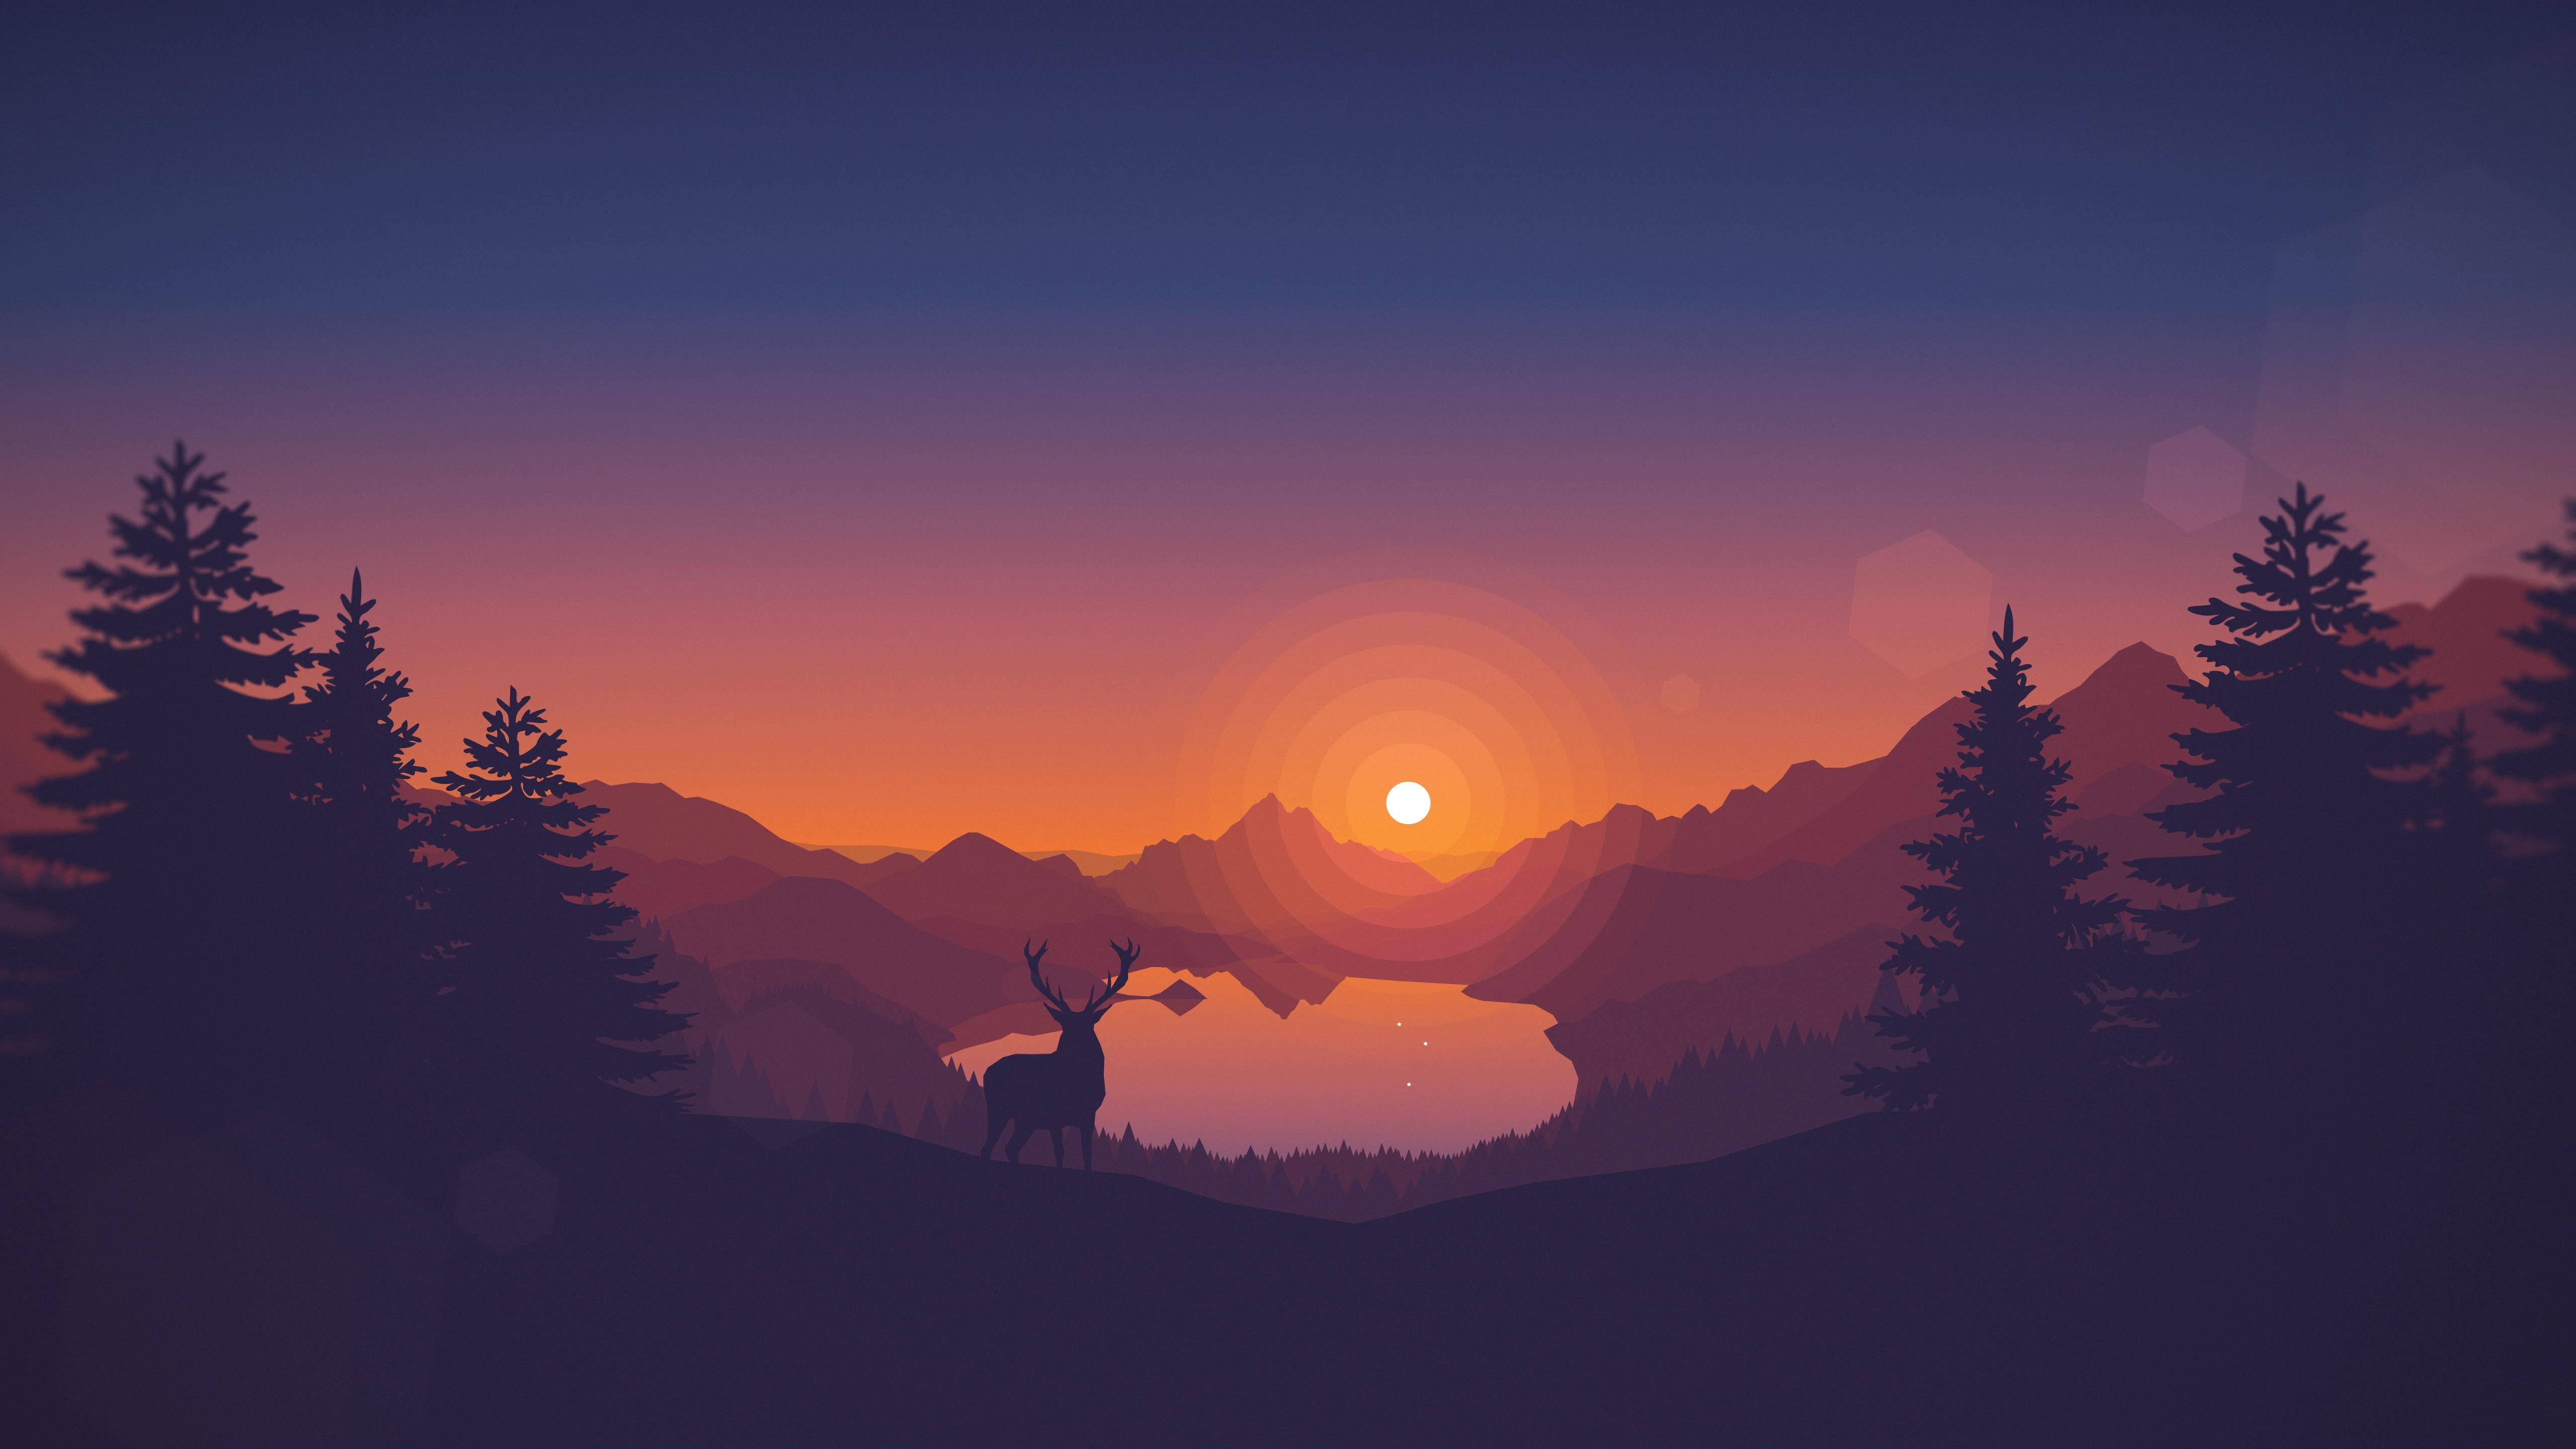 5120x2880 Firewatch 5K Wallpapers | HD Wallpapers | ID #17362